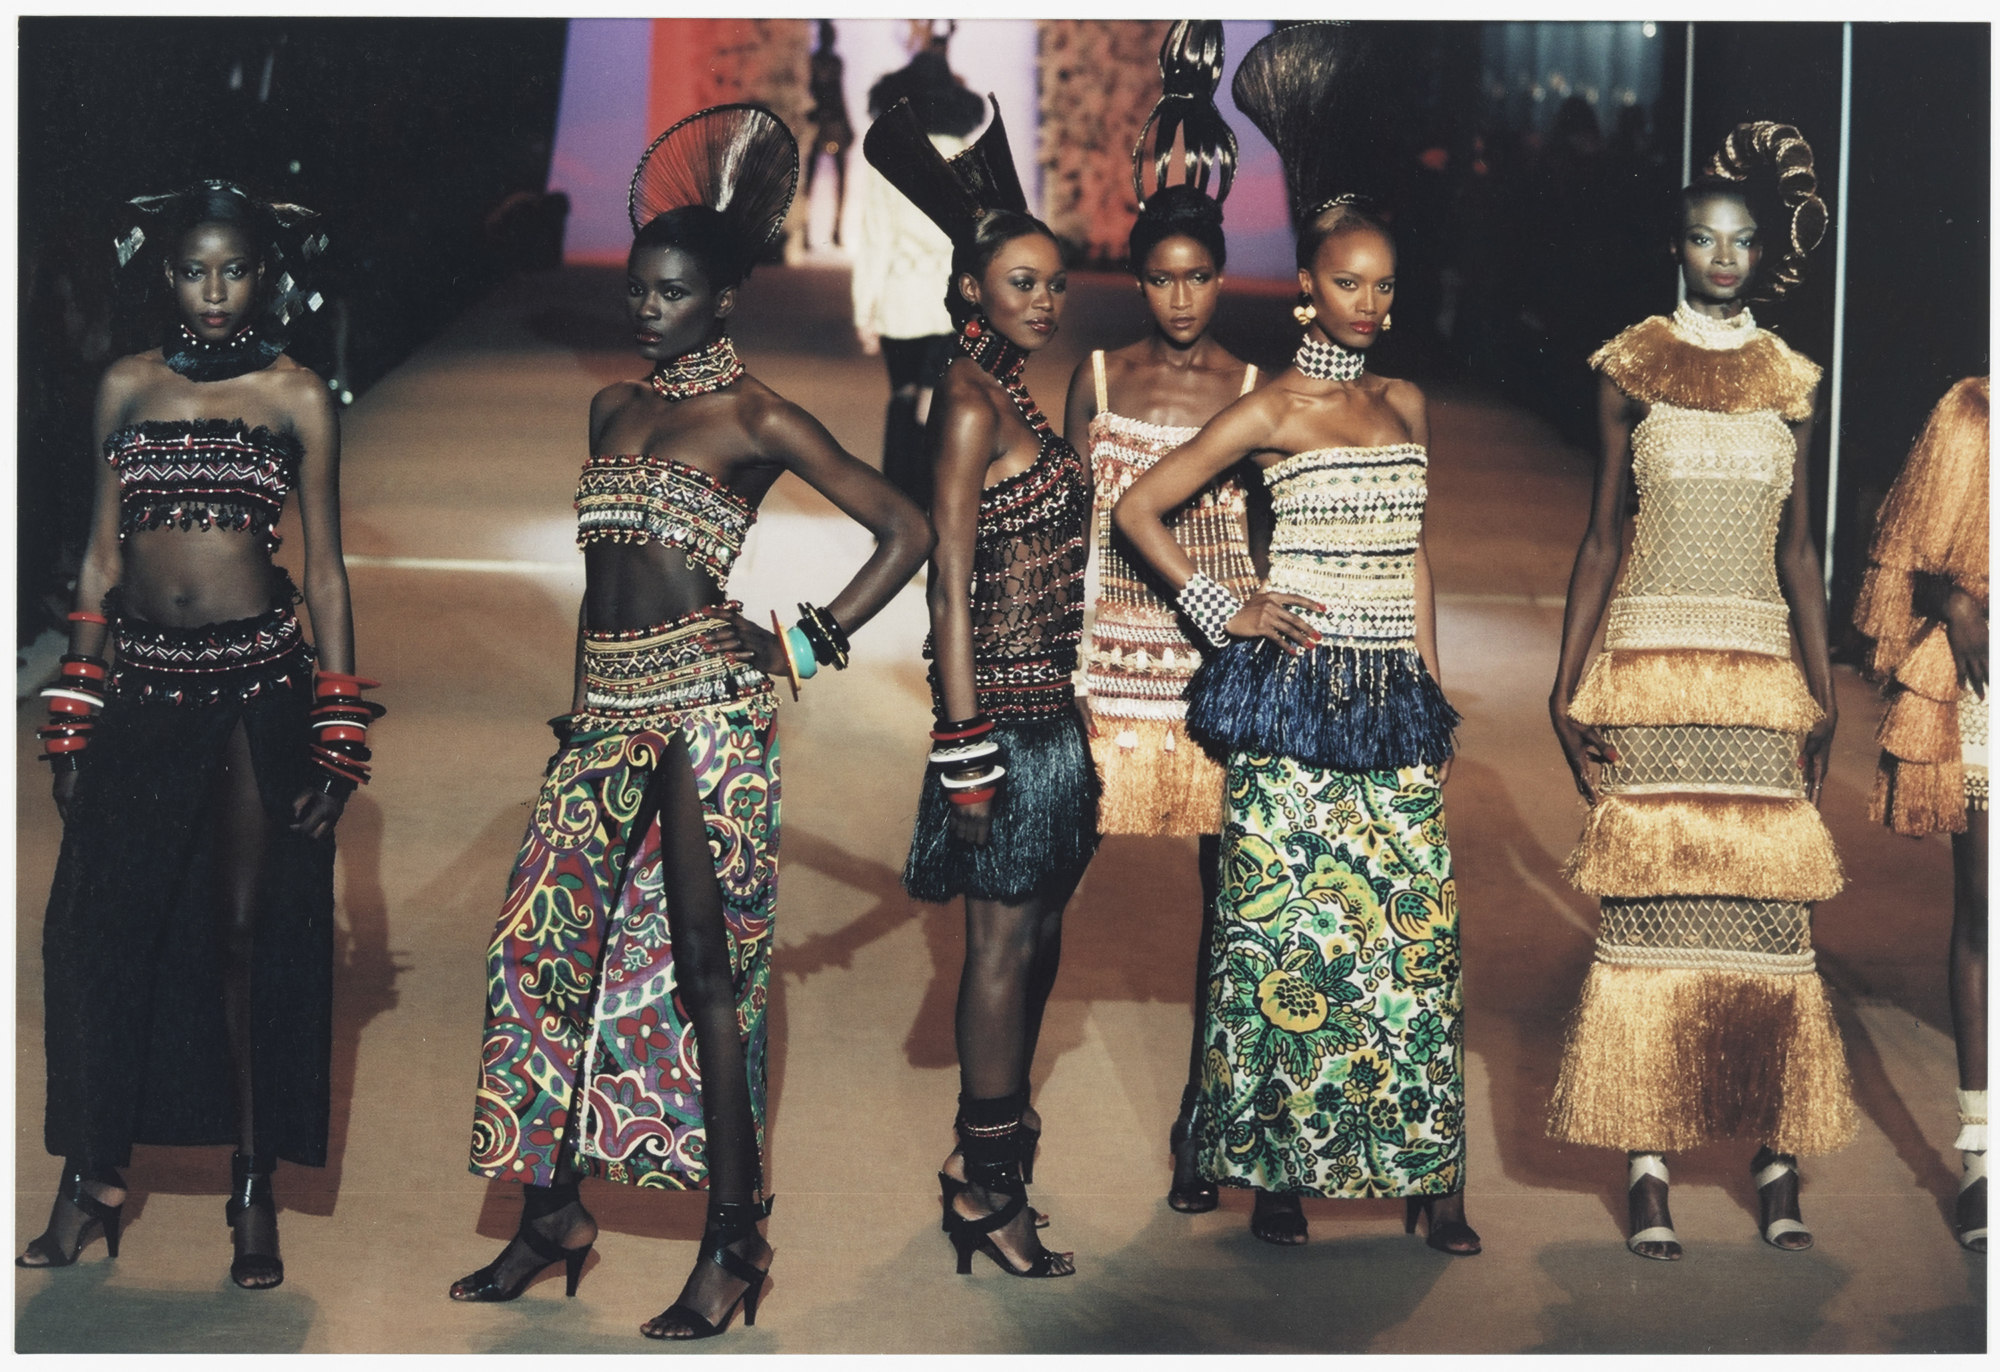 f5cc5617527 Six designs in homage to Bambara art. Spring-summer 1967 haute couture  collection. The last fashion show, Centre Pompidou, Paris, January 22, 2002.